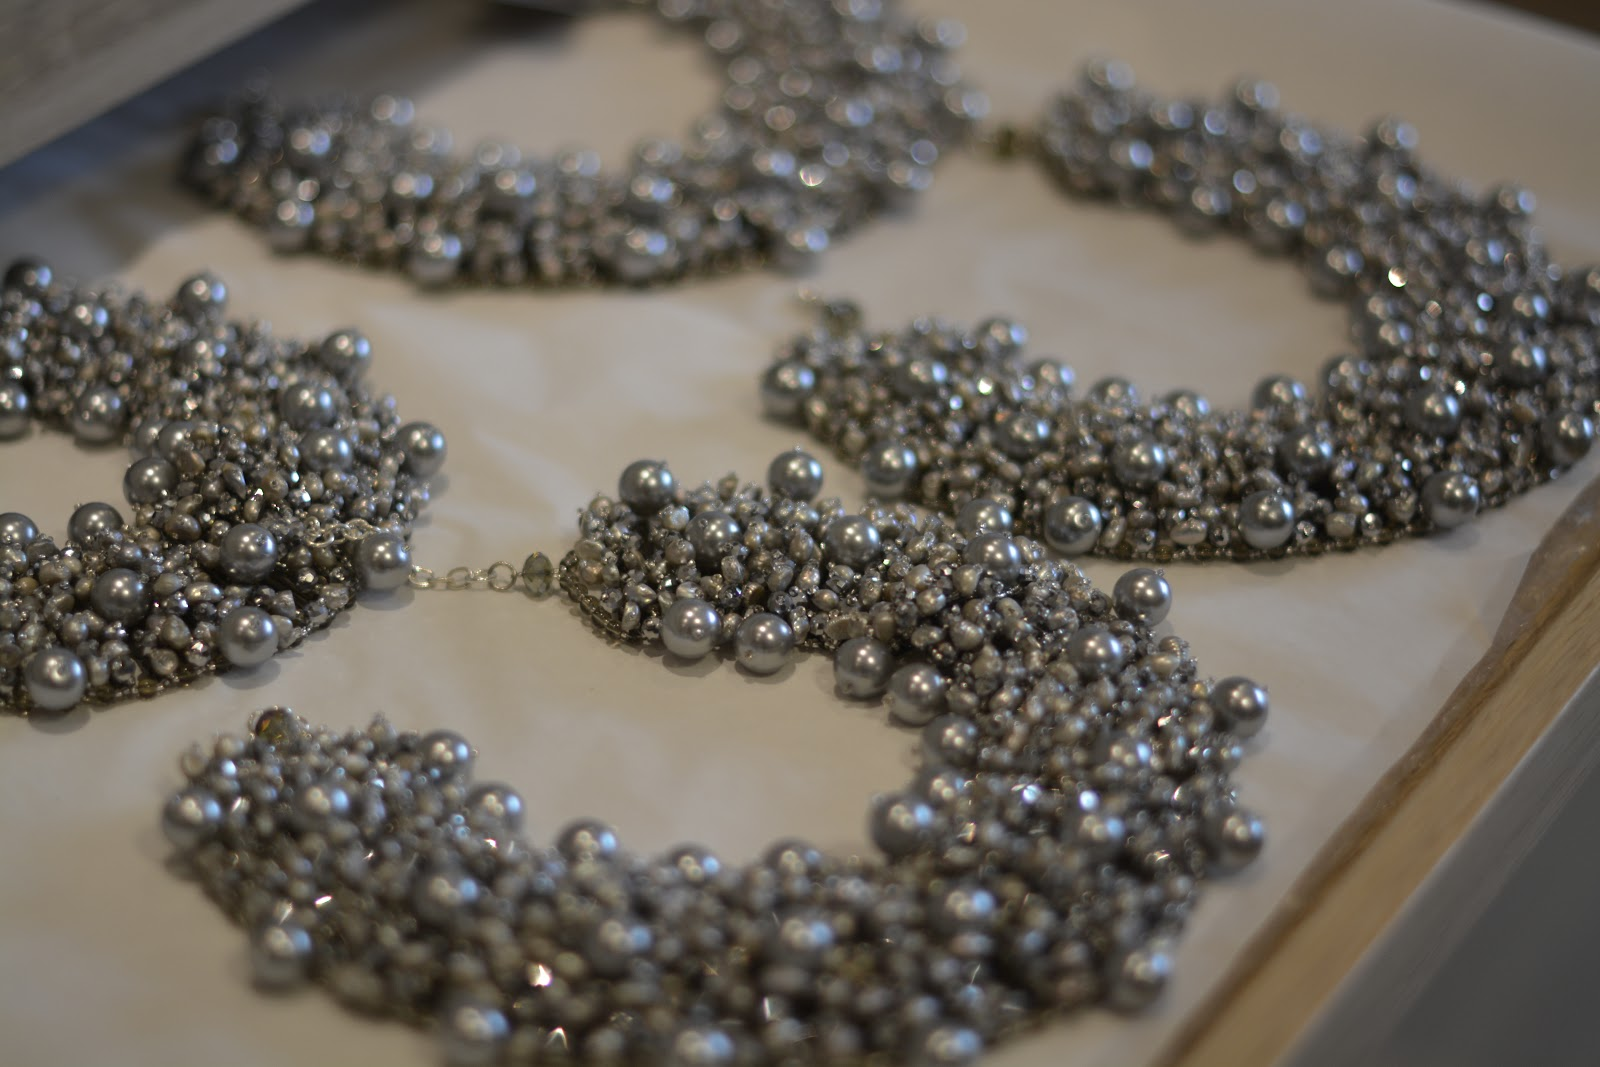 Maitai's picture book: baubles and pearls